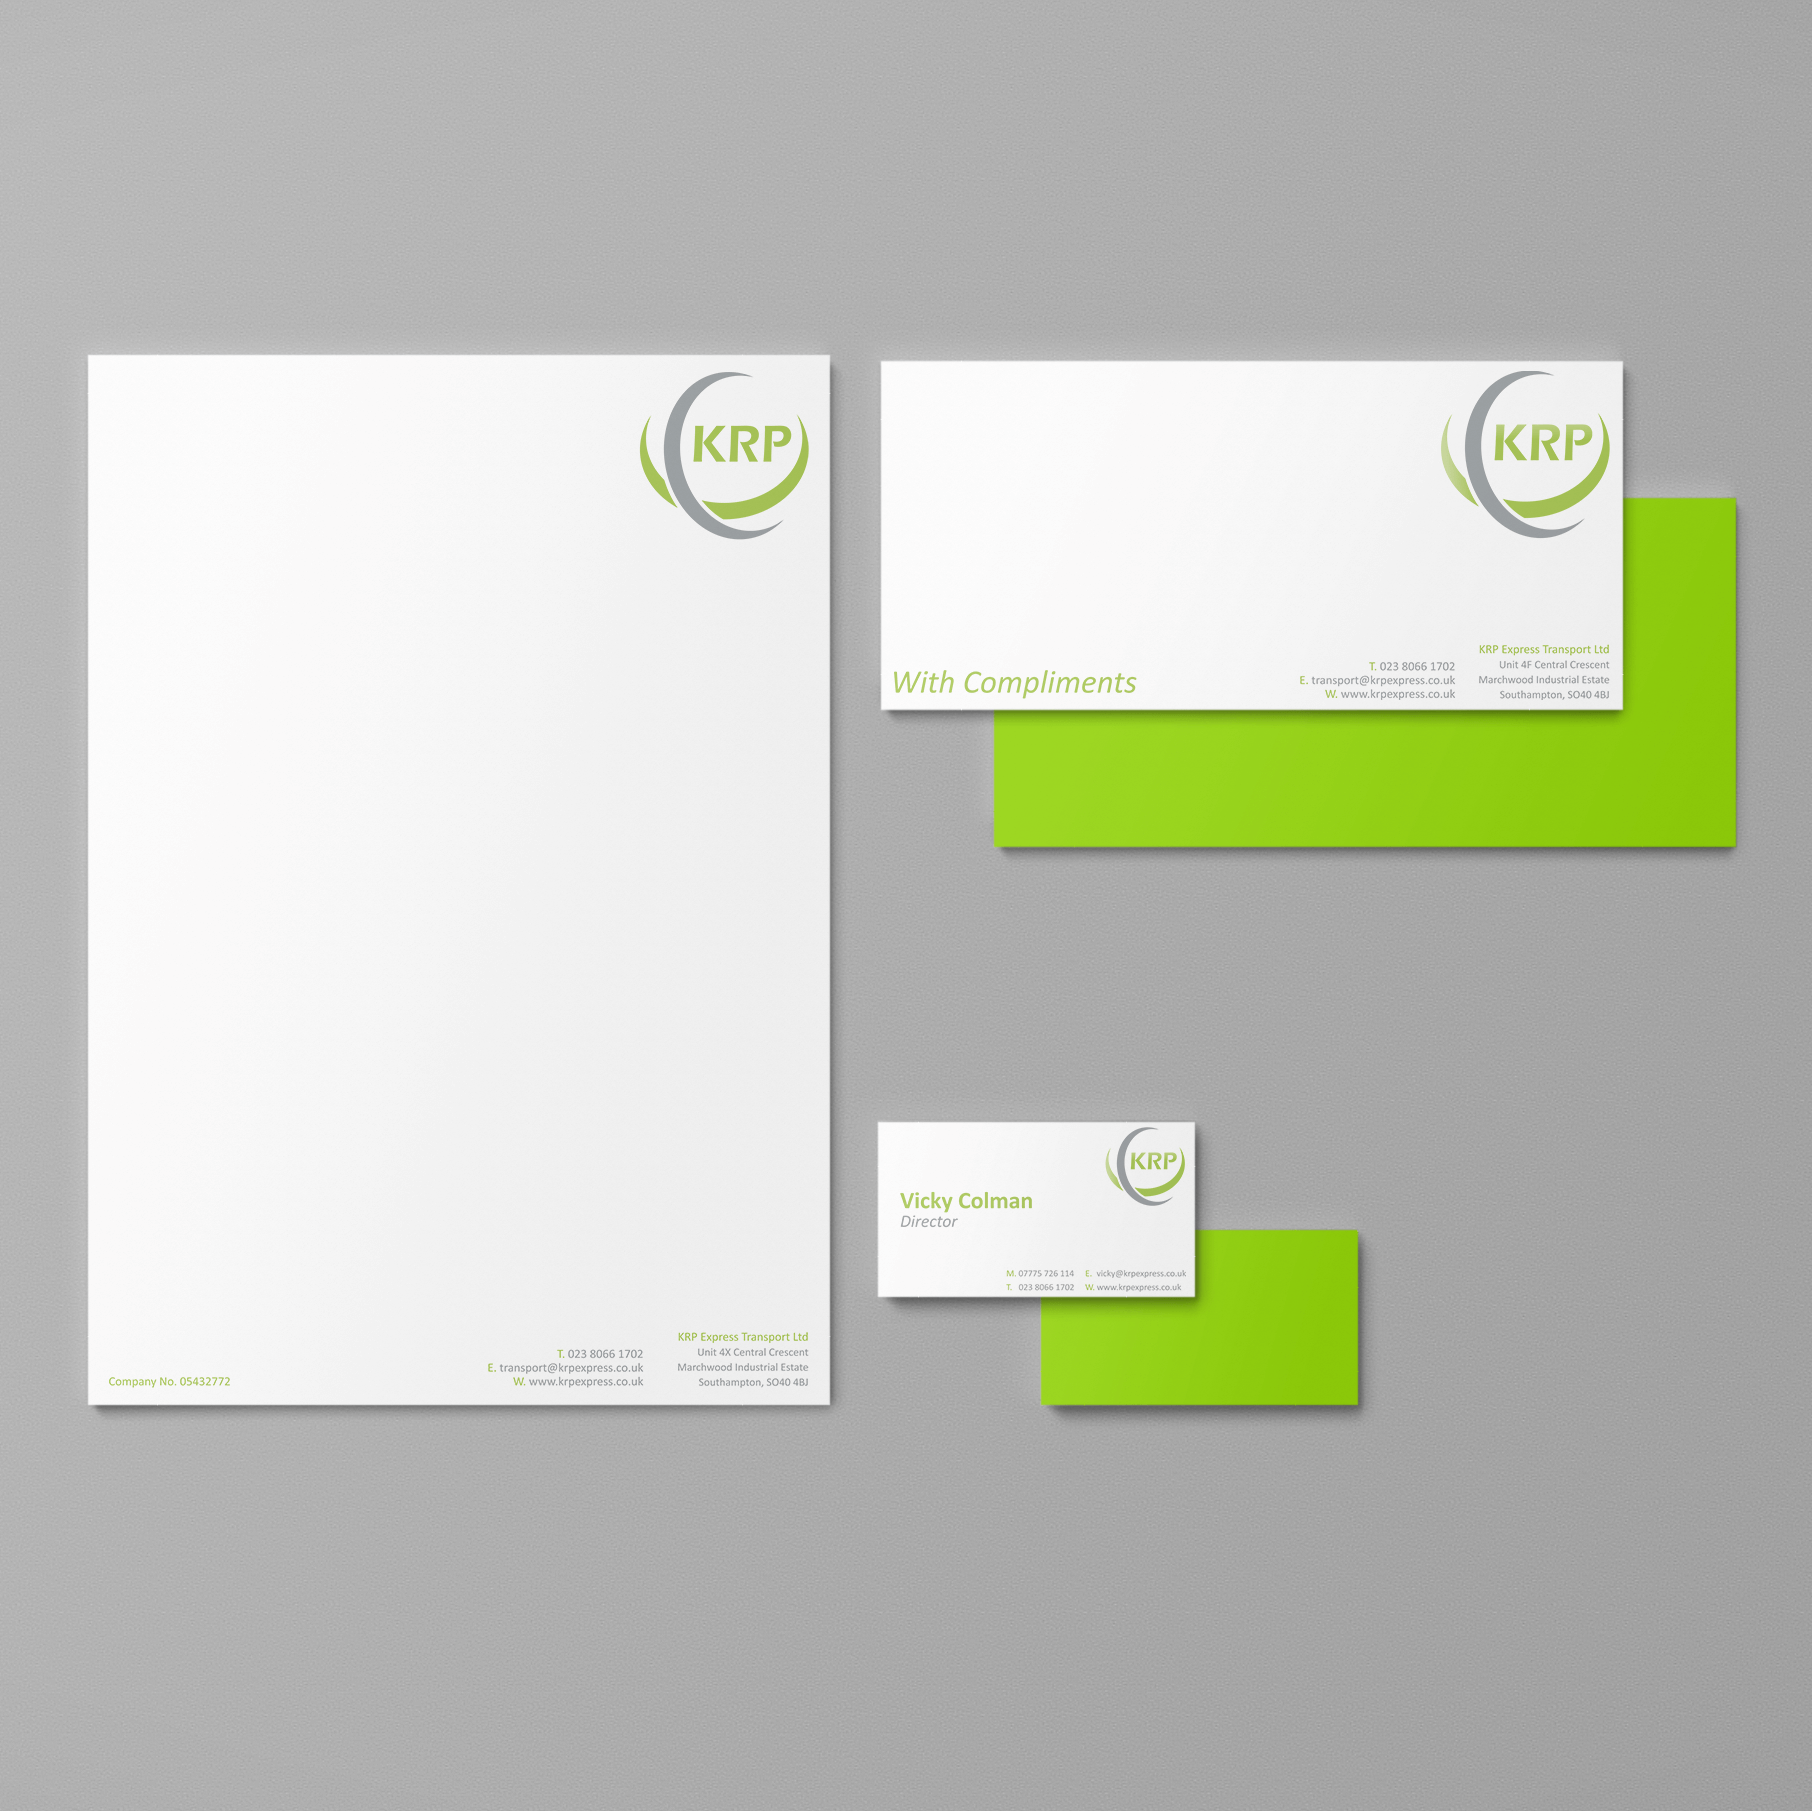 KRP corporate ID design